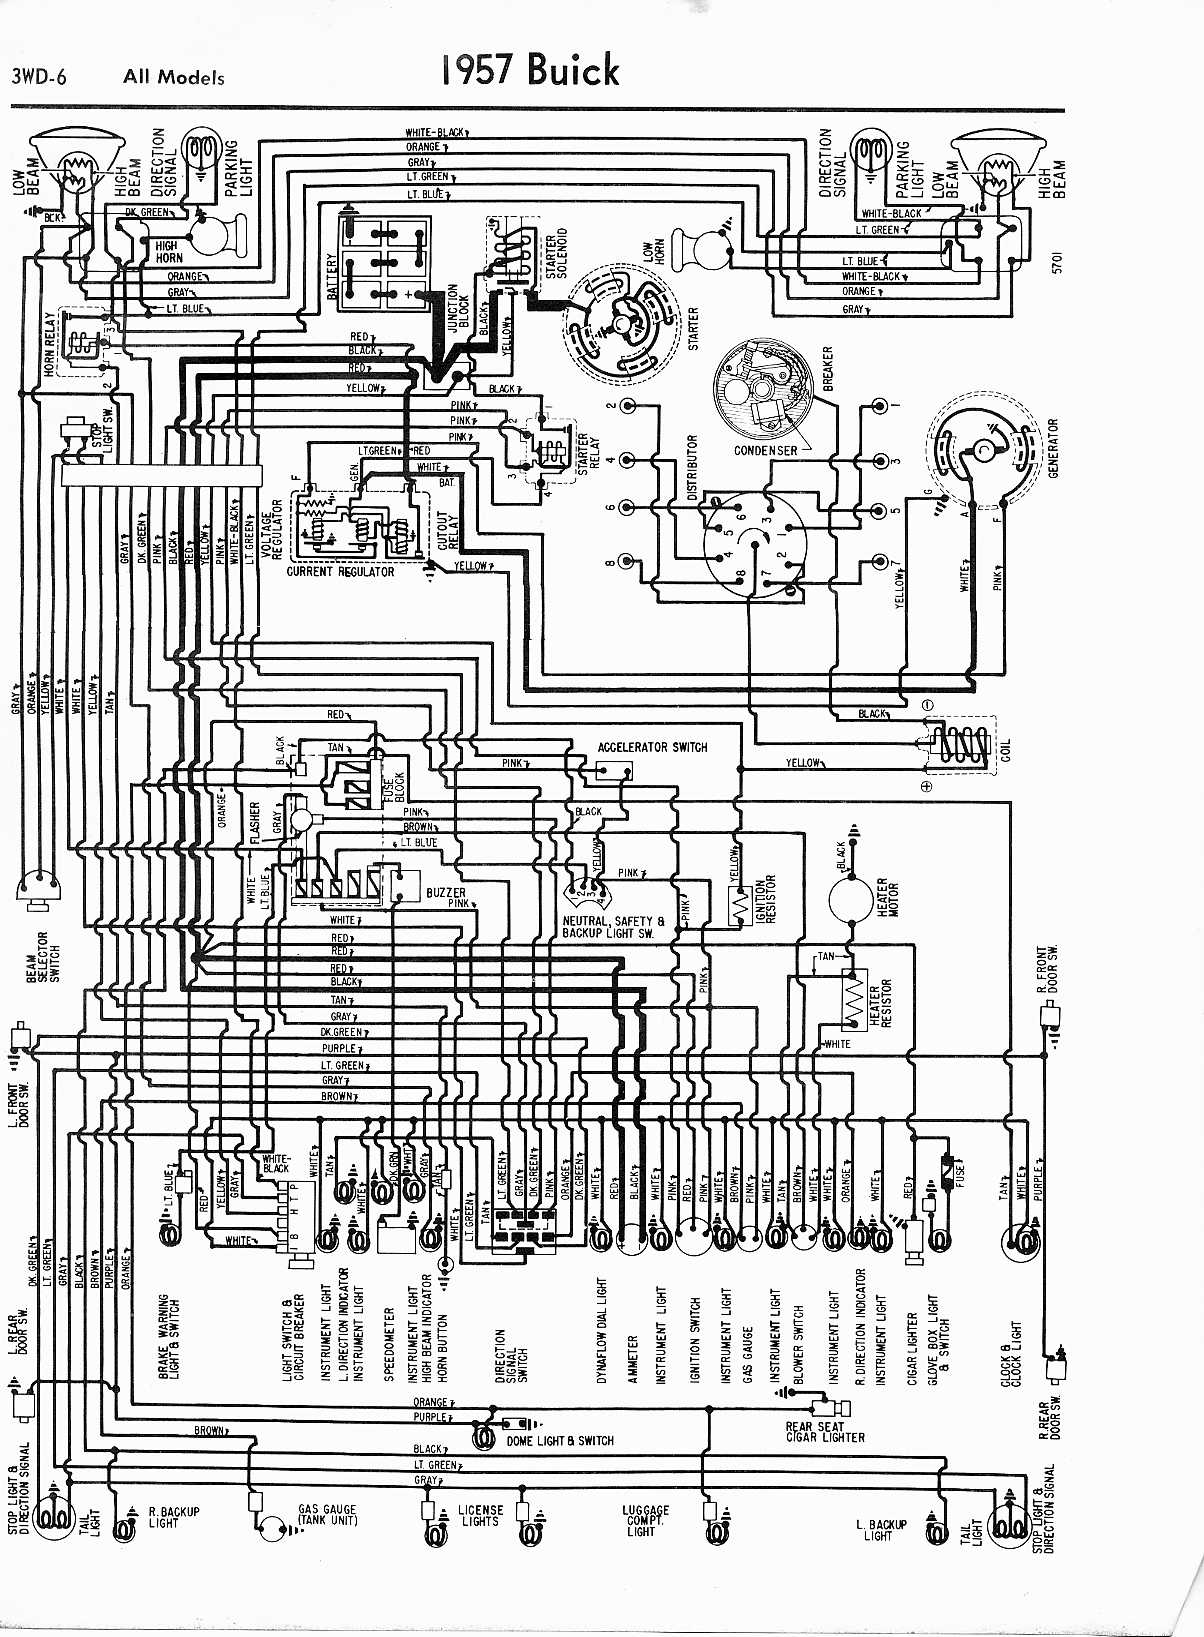 buick riviera wiring to battery diagram 1957 buick gas pedal start problem 1995 buick riviera wiring diagram flashers